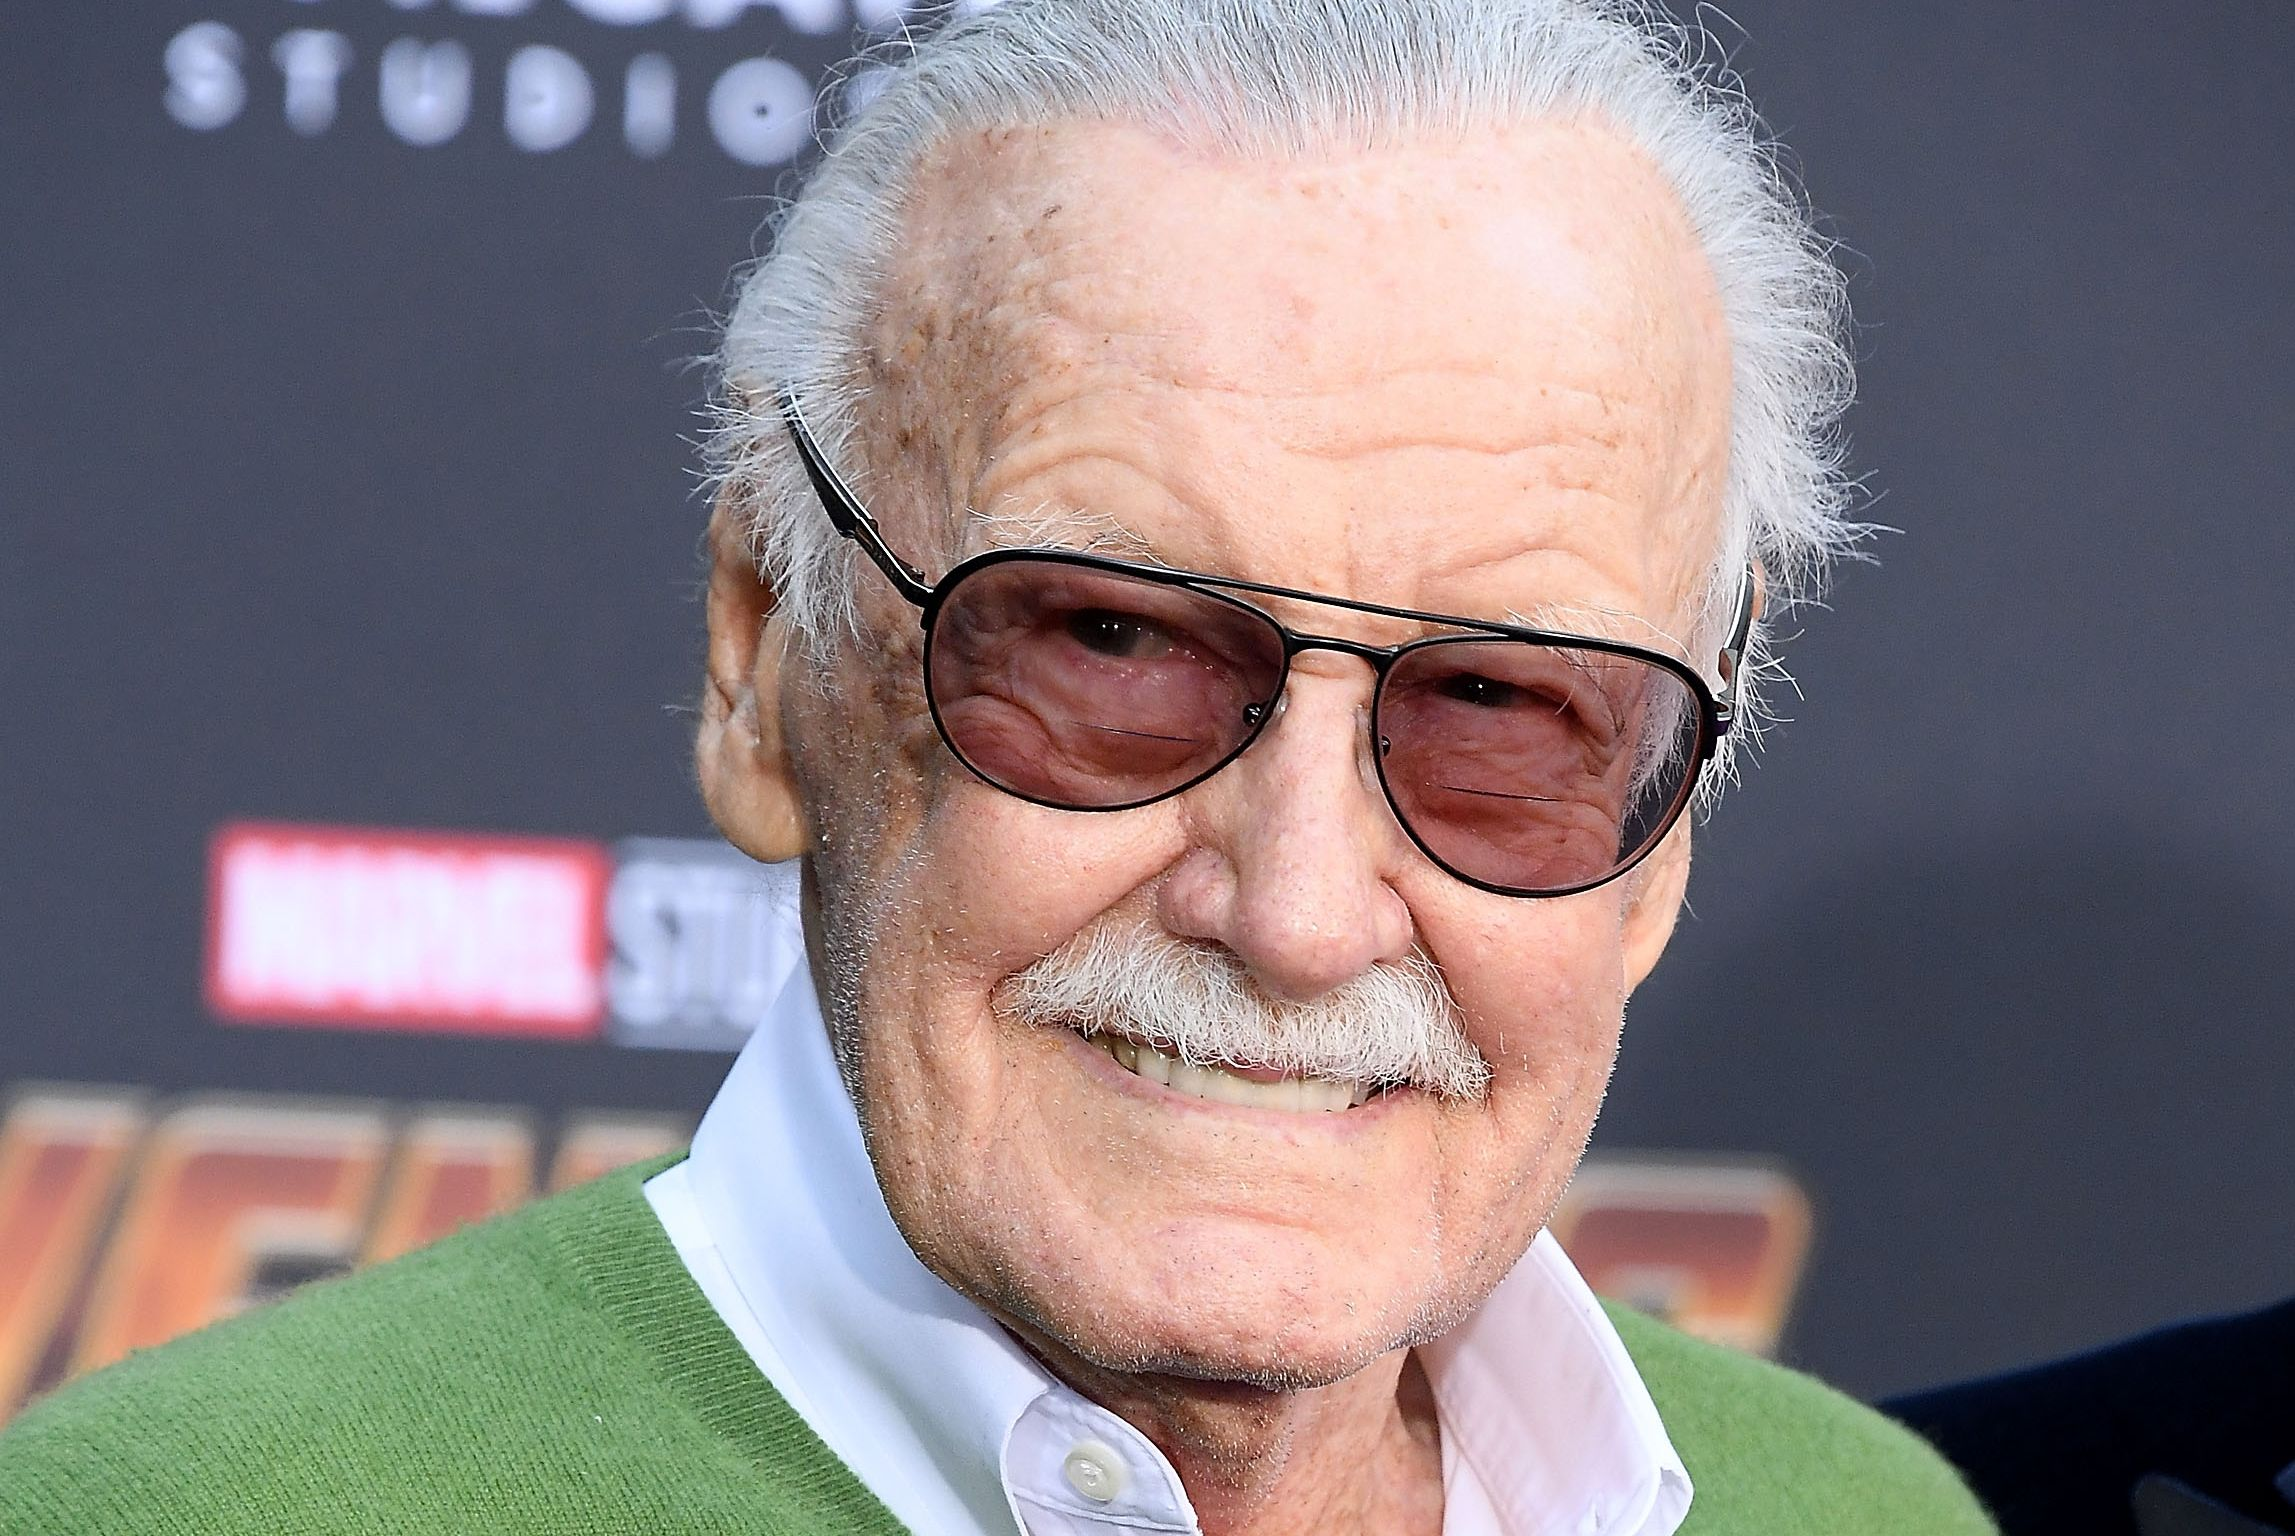 'Keep Moving Forward, And If It's Time To Go, It's Time': Stan Lee's Most Inspiring Quotes